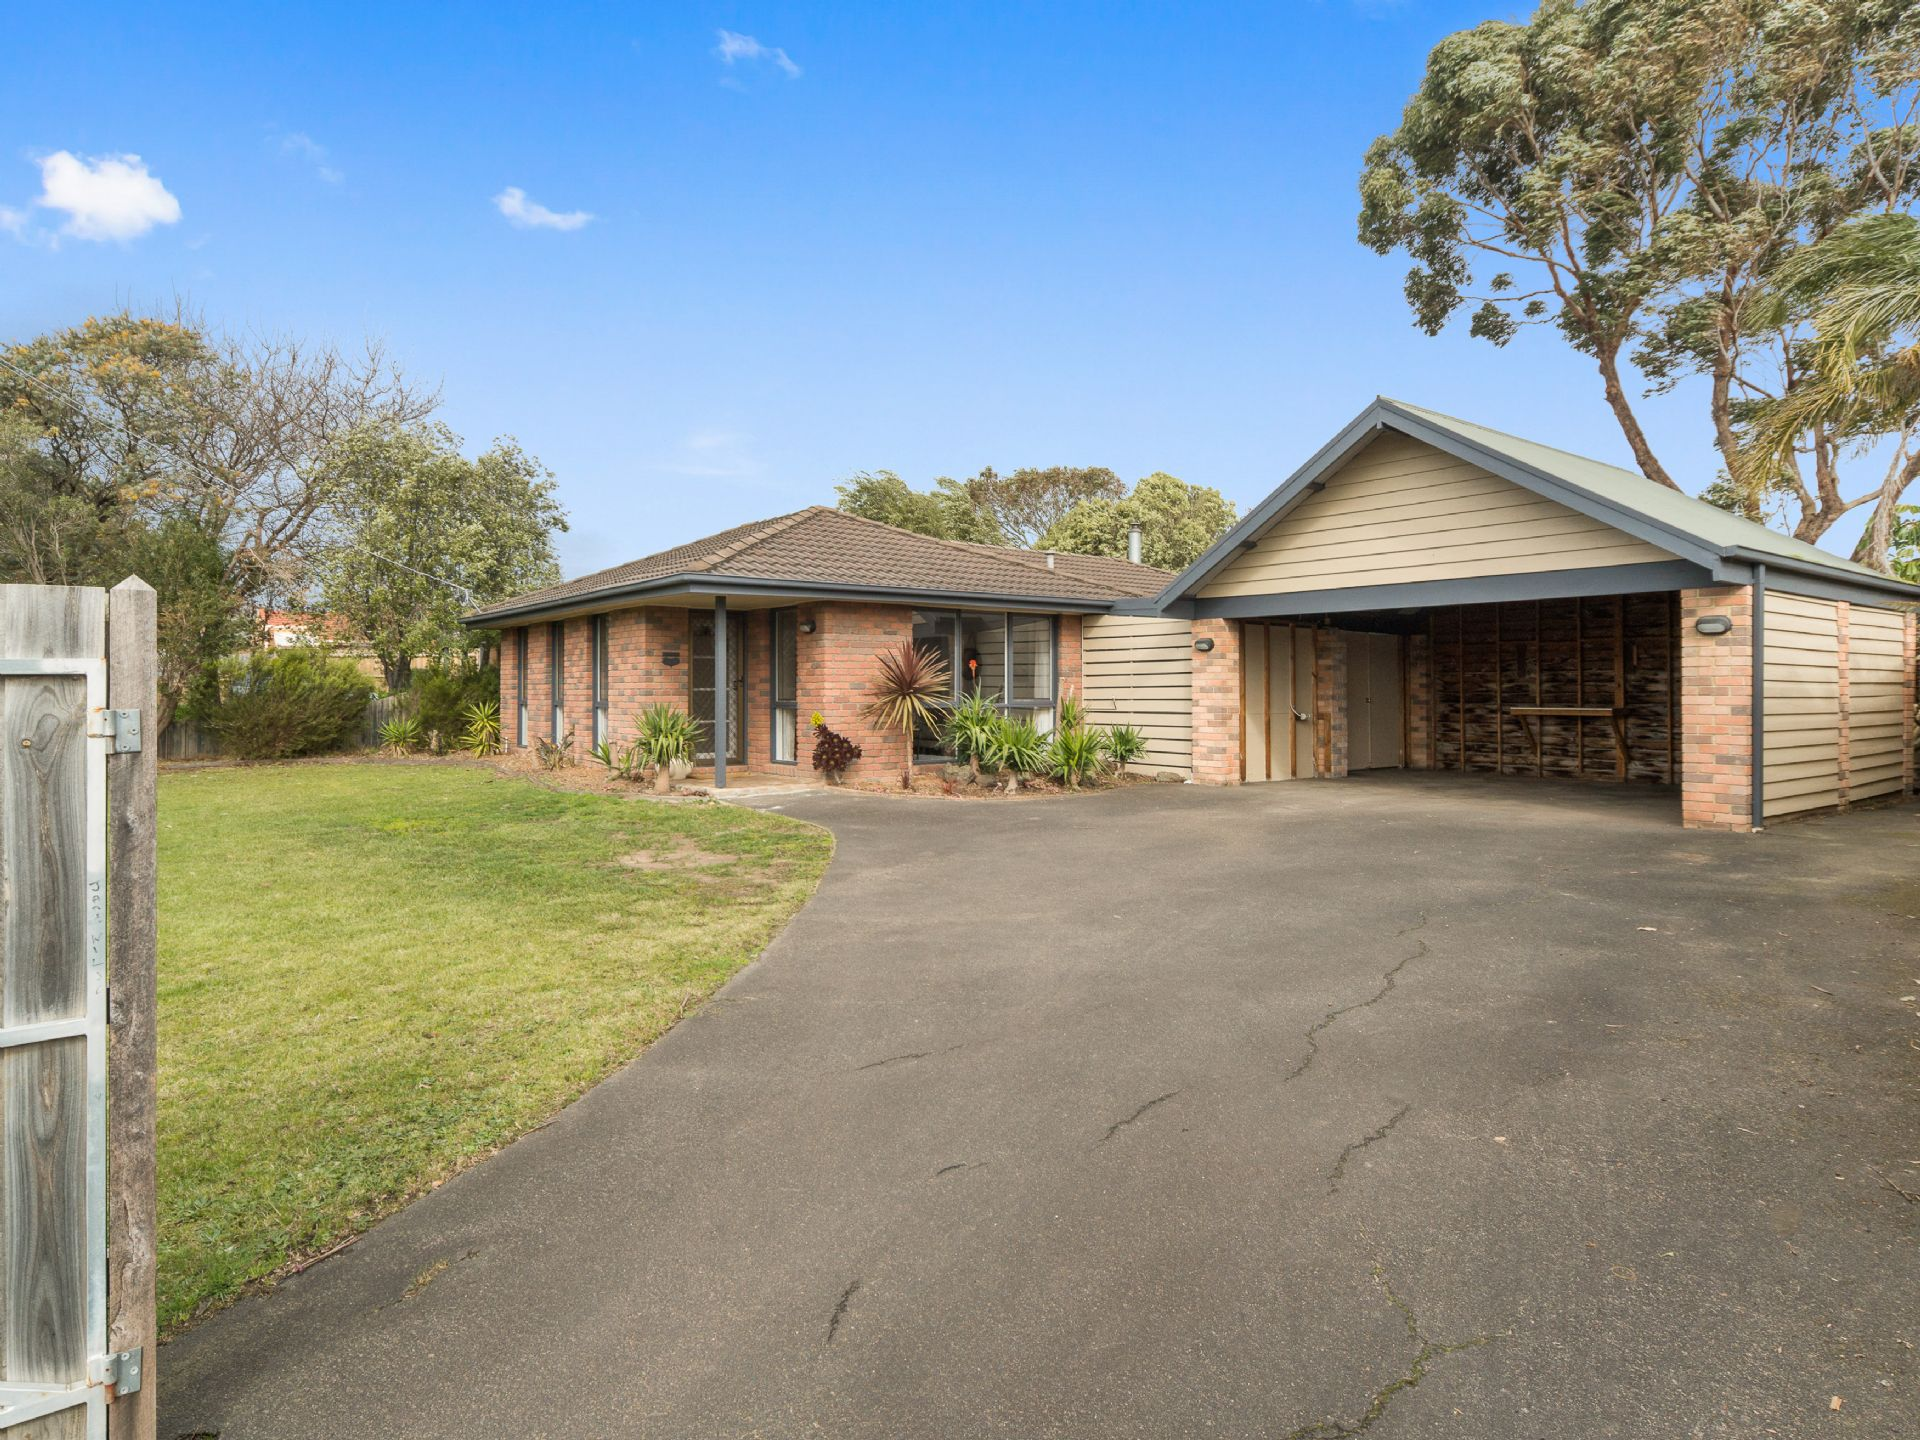 29 Wiltshire Drive, SOMERVILLE, VIC, 3912 - Image